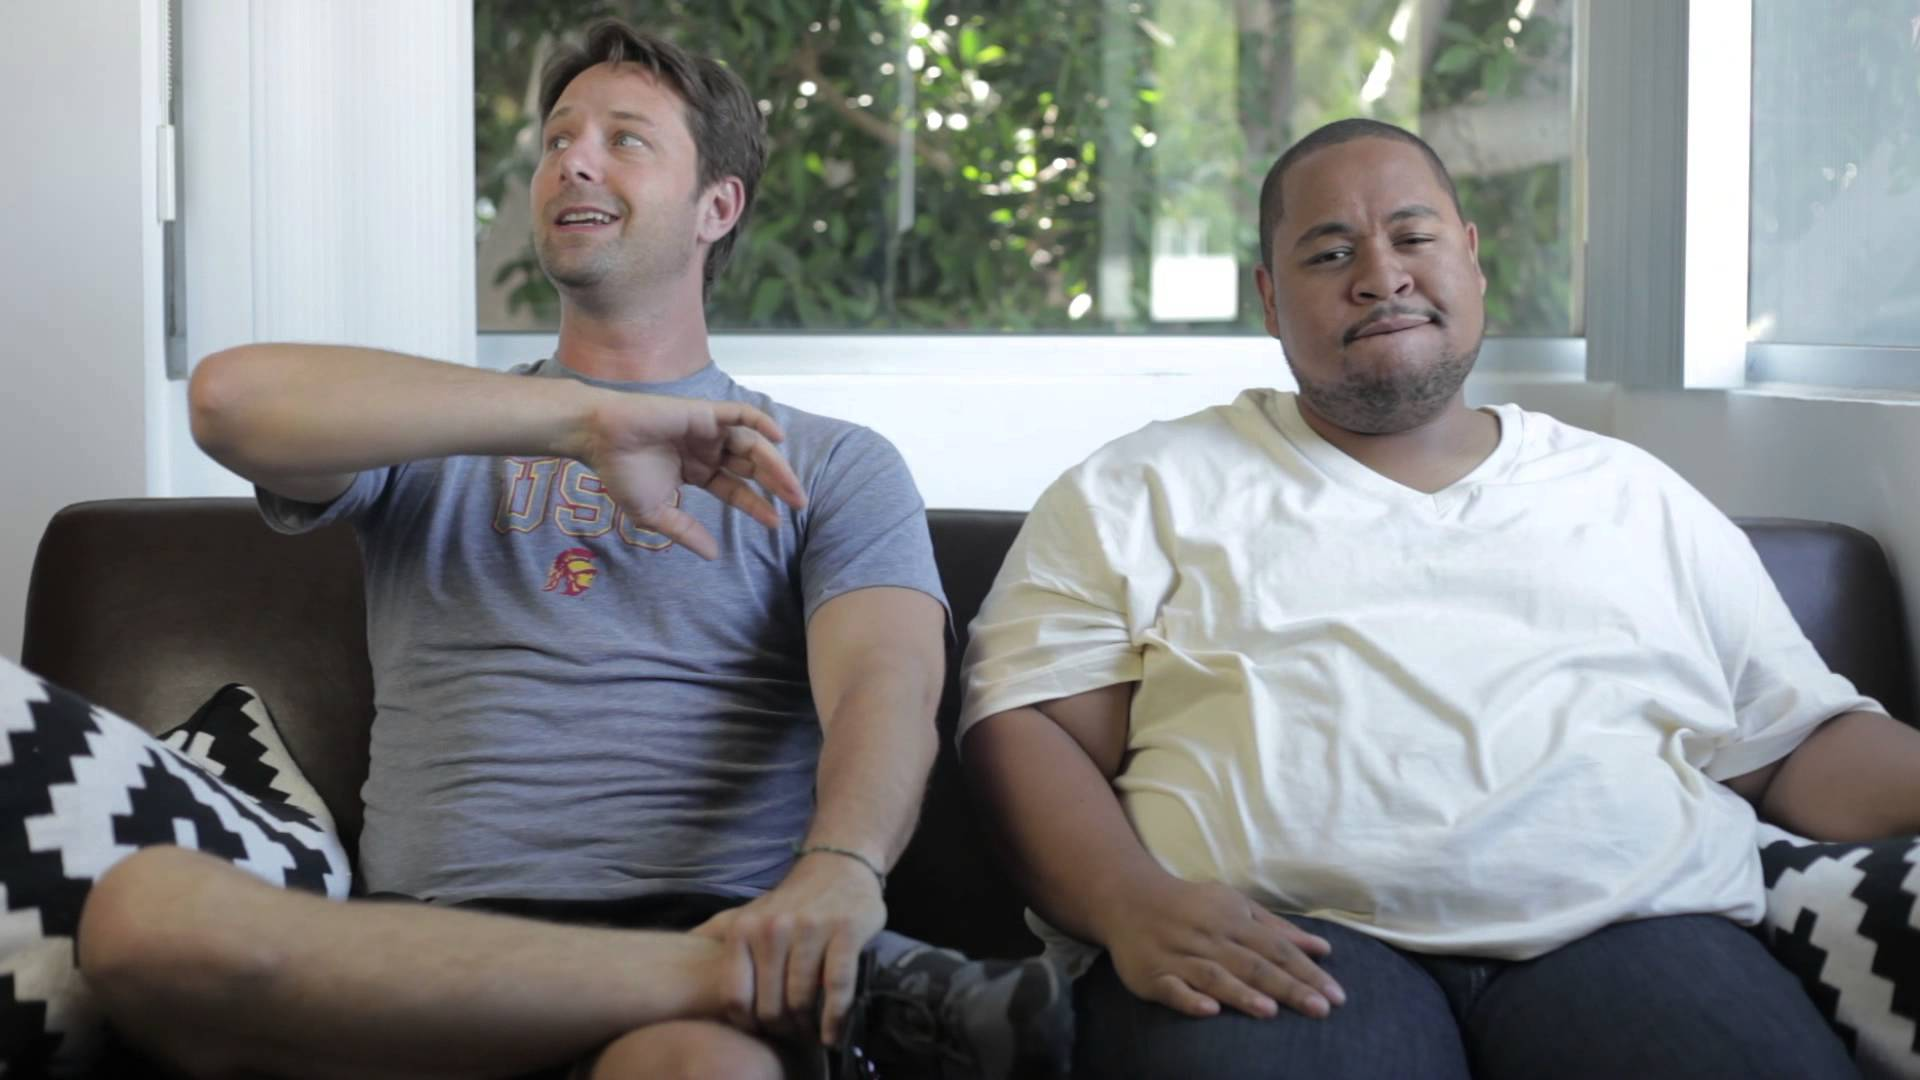 'Friends In Therapy', Unscripted Web Series About Two Guys Who Go to Therapy to Work Out Issues in Their Friendship